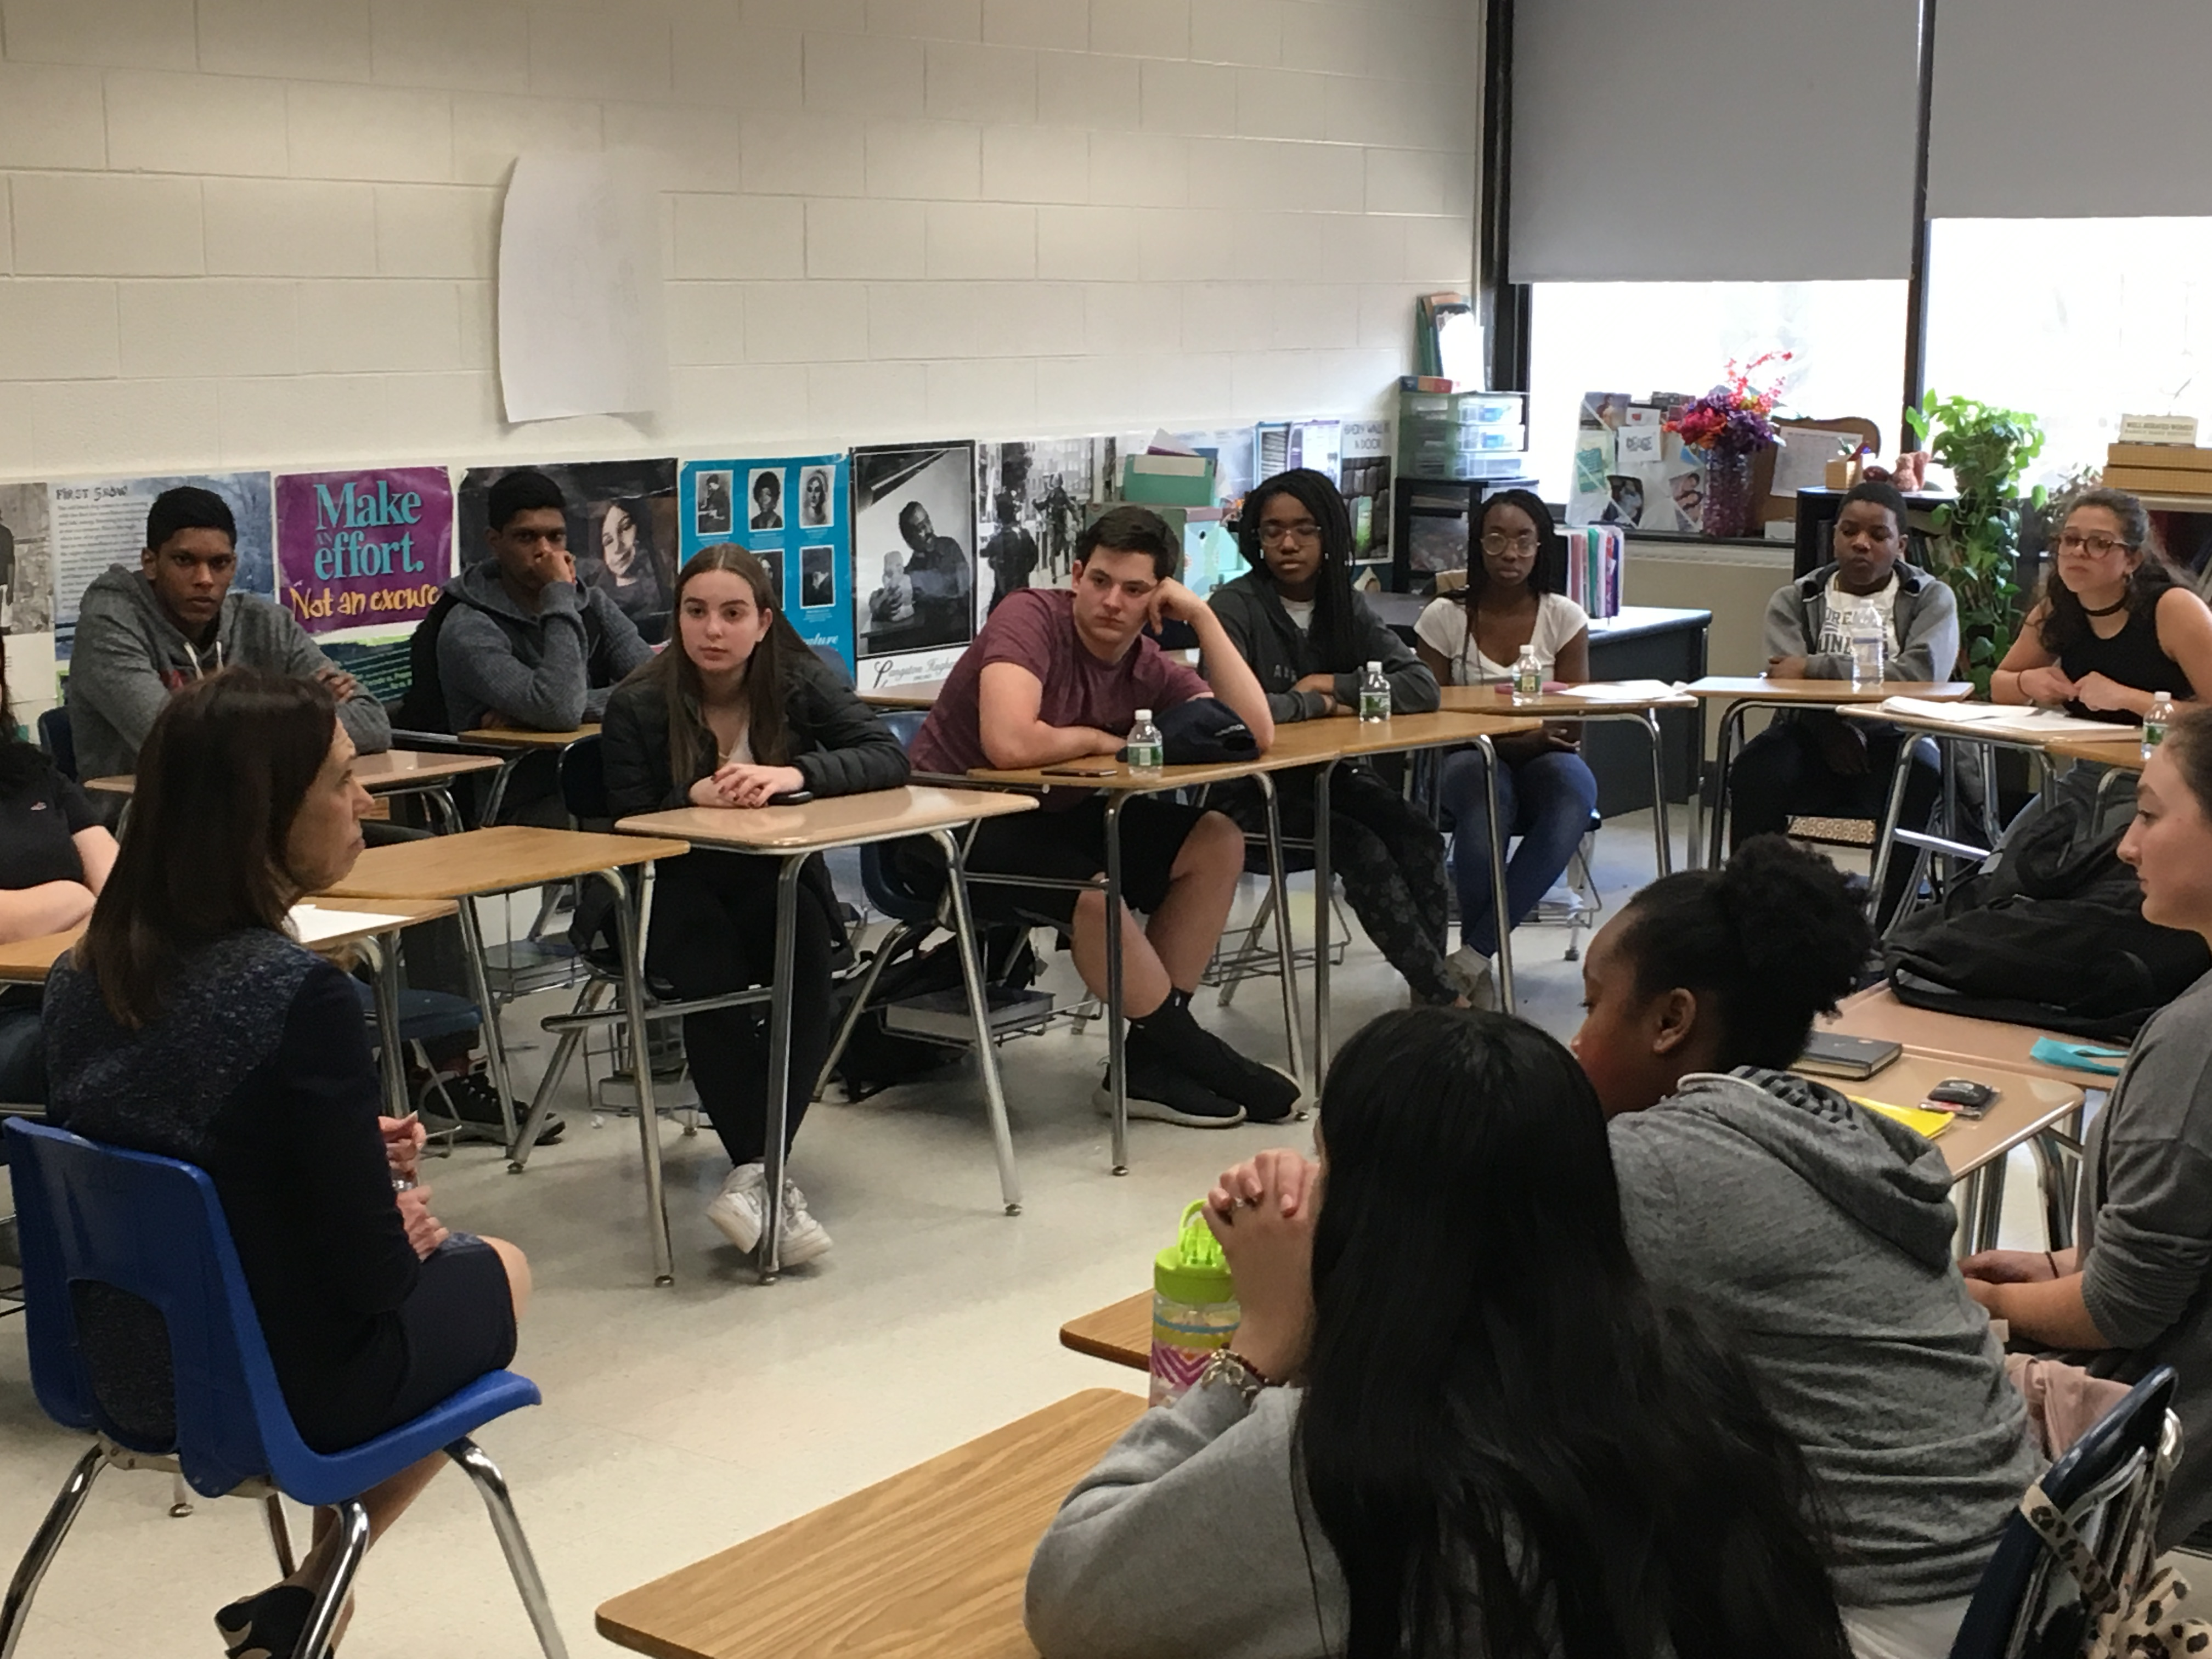 Assemblymember Amy Paulin met with the members of the FEMpowerMENT Club at New Rochelle High School on April 11, 2018 to discuss how she first decided to run for office, the barriers women legislators